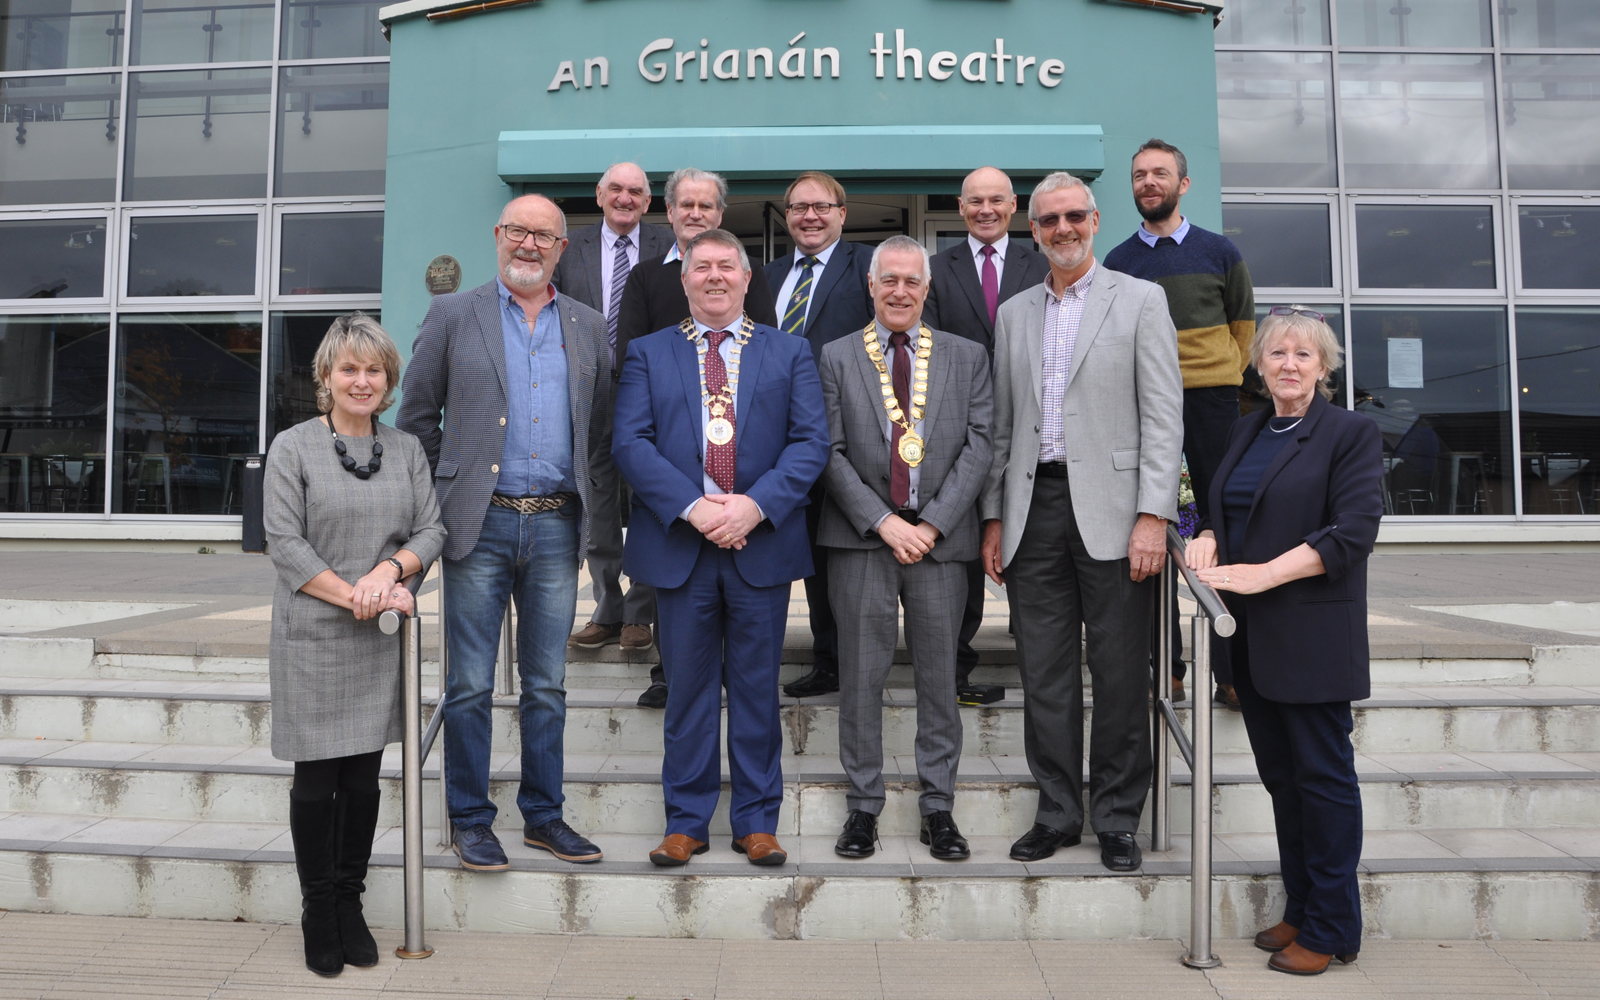 3 October 2017: Official launch of the All Ireland One Act Drama Finals which will be held in Letterkenny for the first time this December. Front row left to right: Jean Curran, John Travers, Mayor of Donegal Cllr Gerry Mc Monagle, Mayor of Letterkenny Municipal District Cllr Jimmy Kavanagh, Plunkett O'Fearraigh and Anne Mc Gowan. Back row left to right: Sean Mc Cormack, Cllr Ian Mc Garvey ,Cllr Michael Mc Bride, James Mc Laughlin A.I.B.and John O'Donnell.